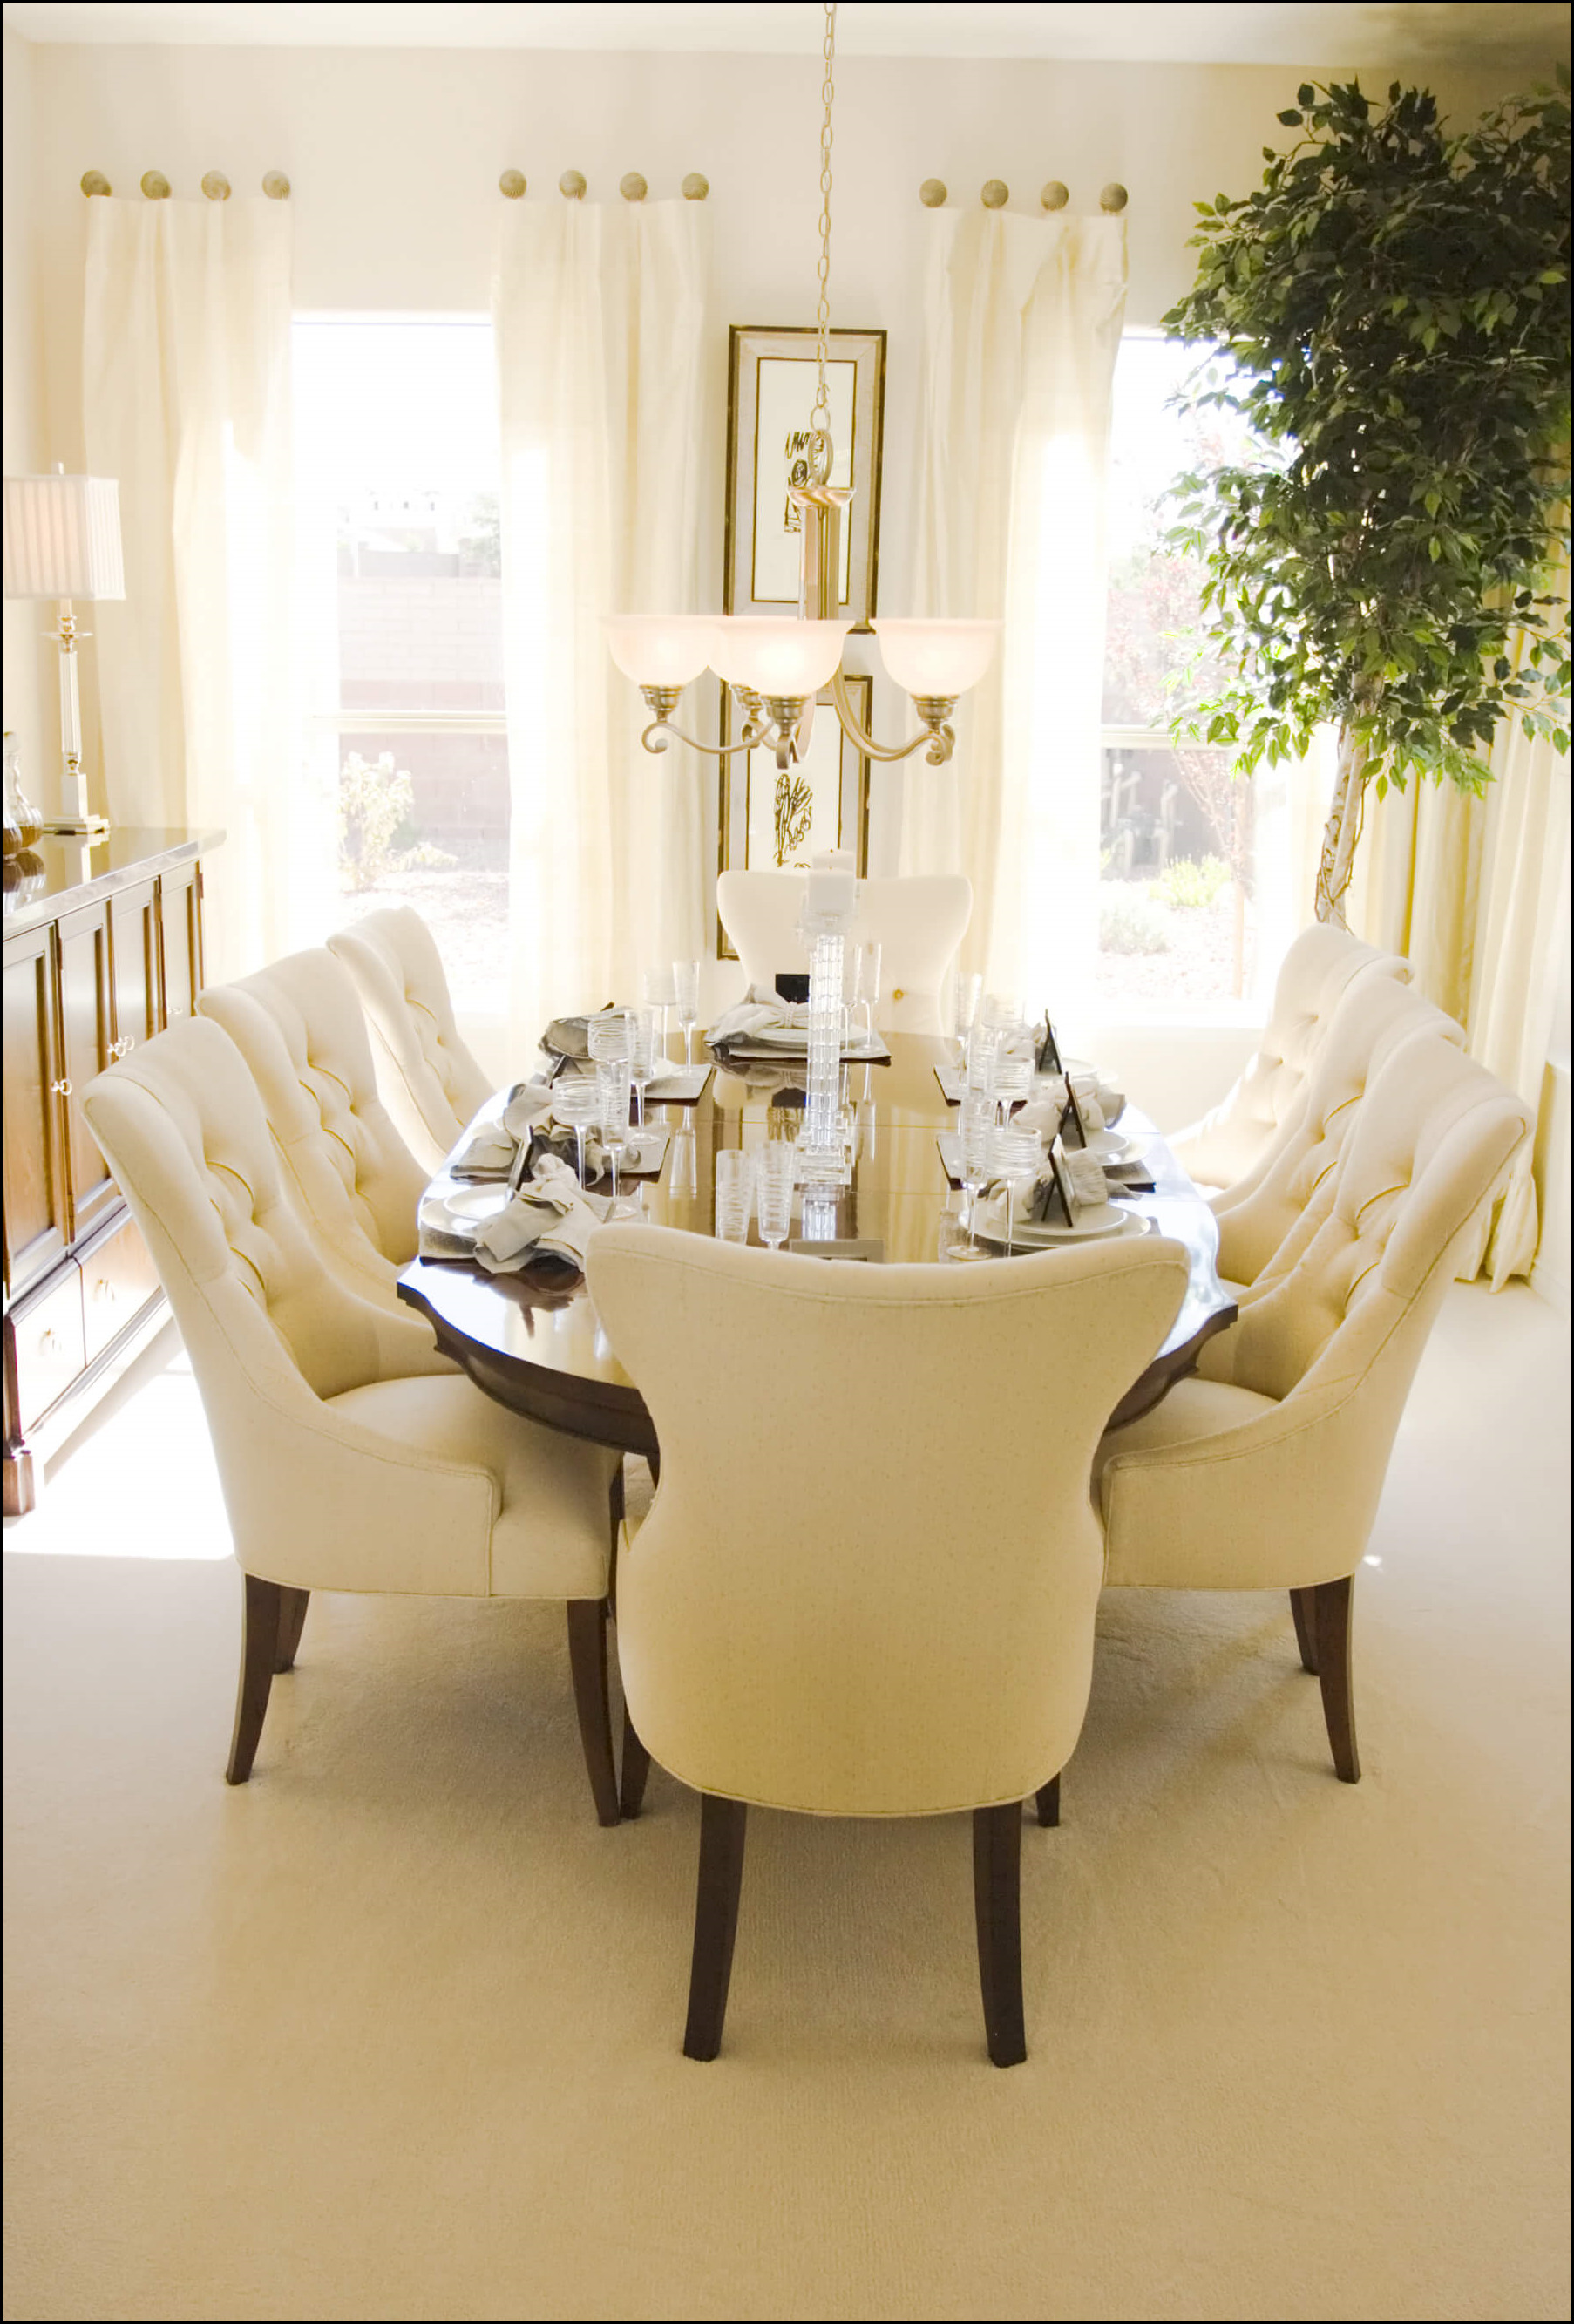 Stop By Our Showroom Positioned In East Brunswick New Jersey To See Contemporary Modern Day Dining Area Furnishings GMI Styles Offers You The Best